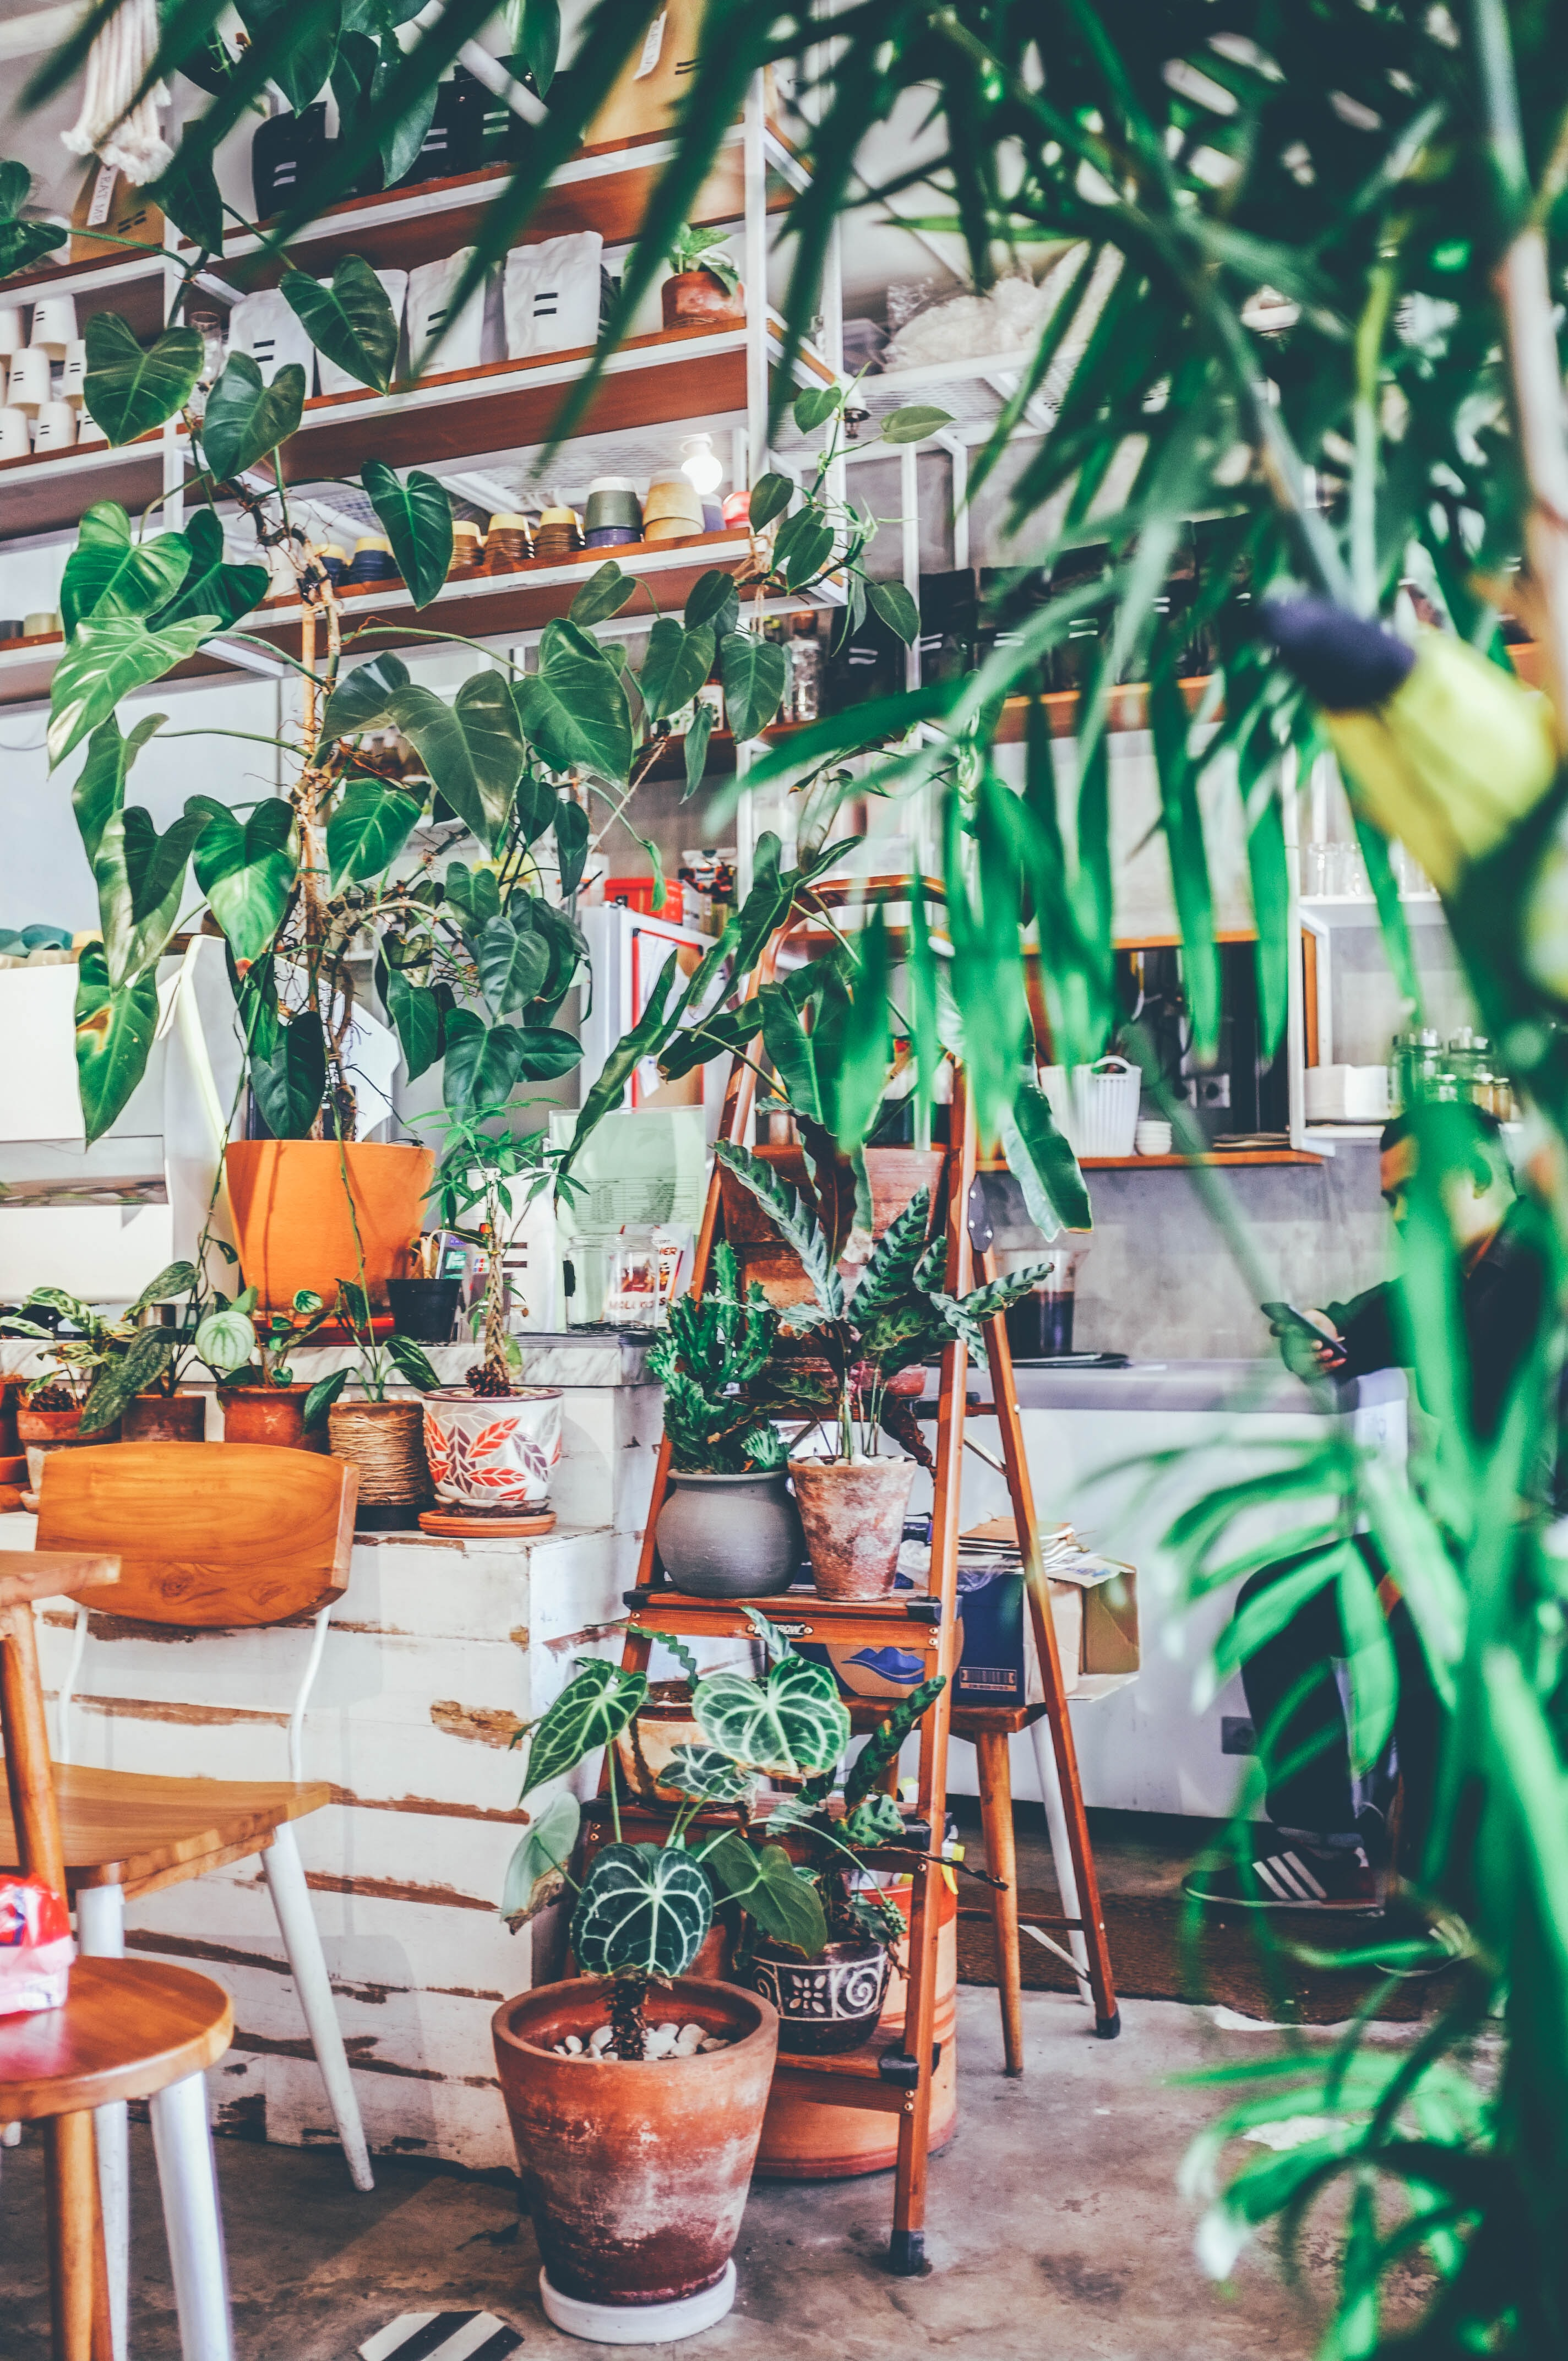 pile of potted plants on A-frame ladder near chair and shelf